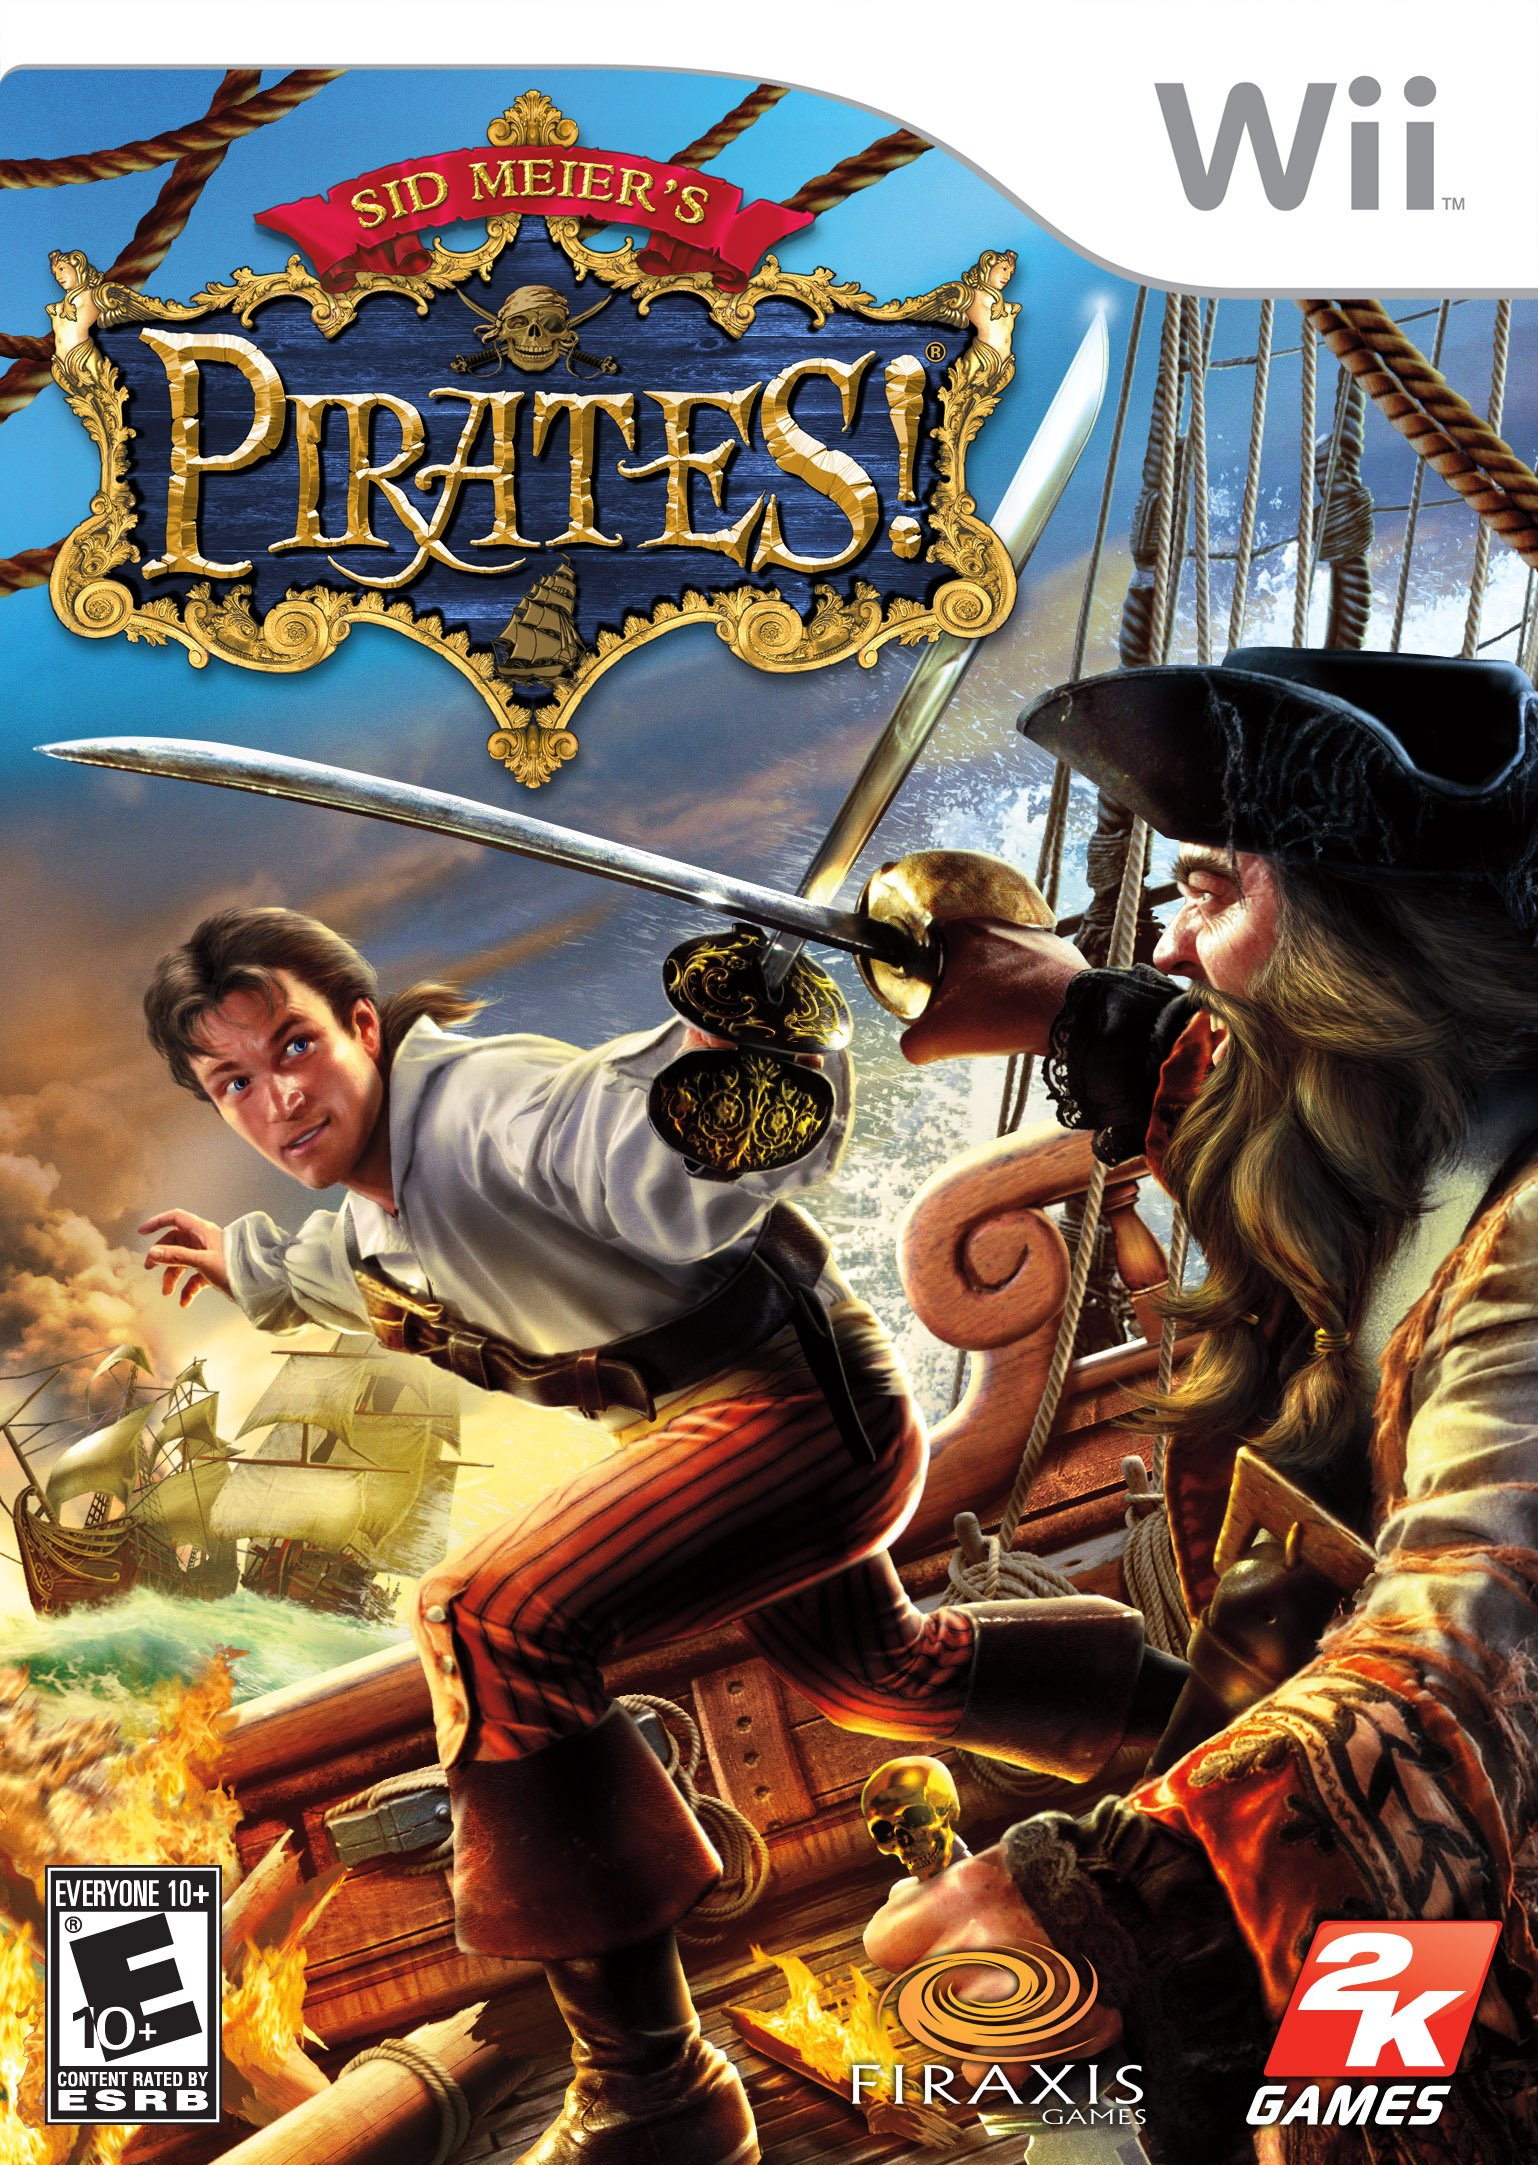 Take 2-Sid Meier's Pirates!